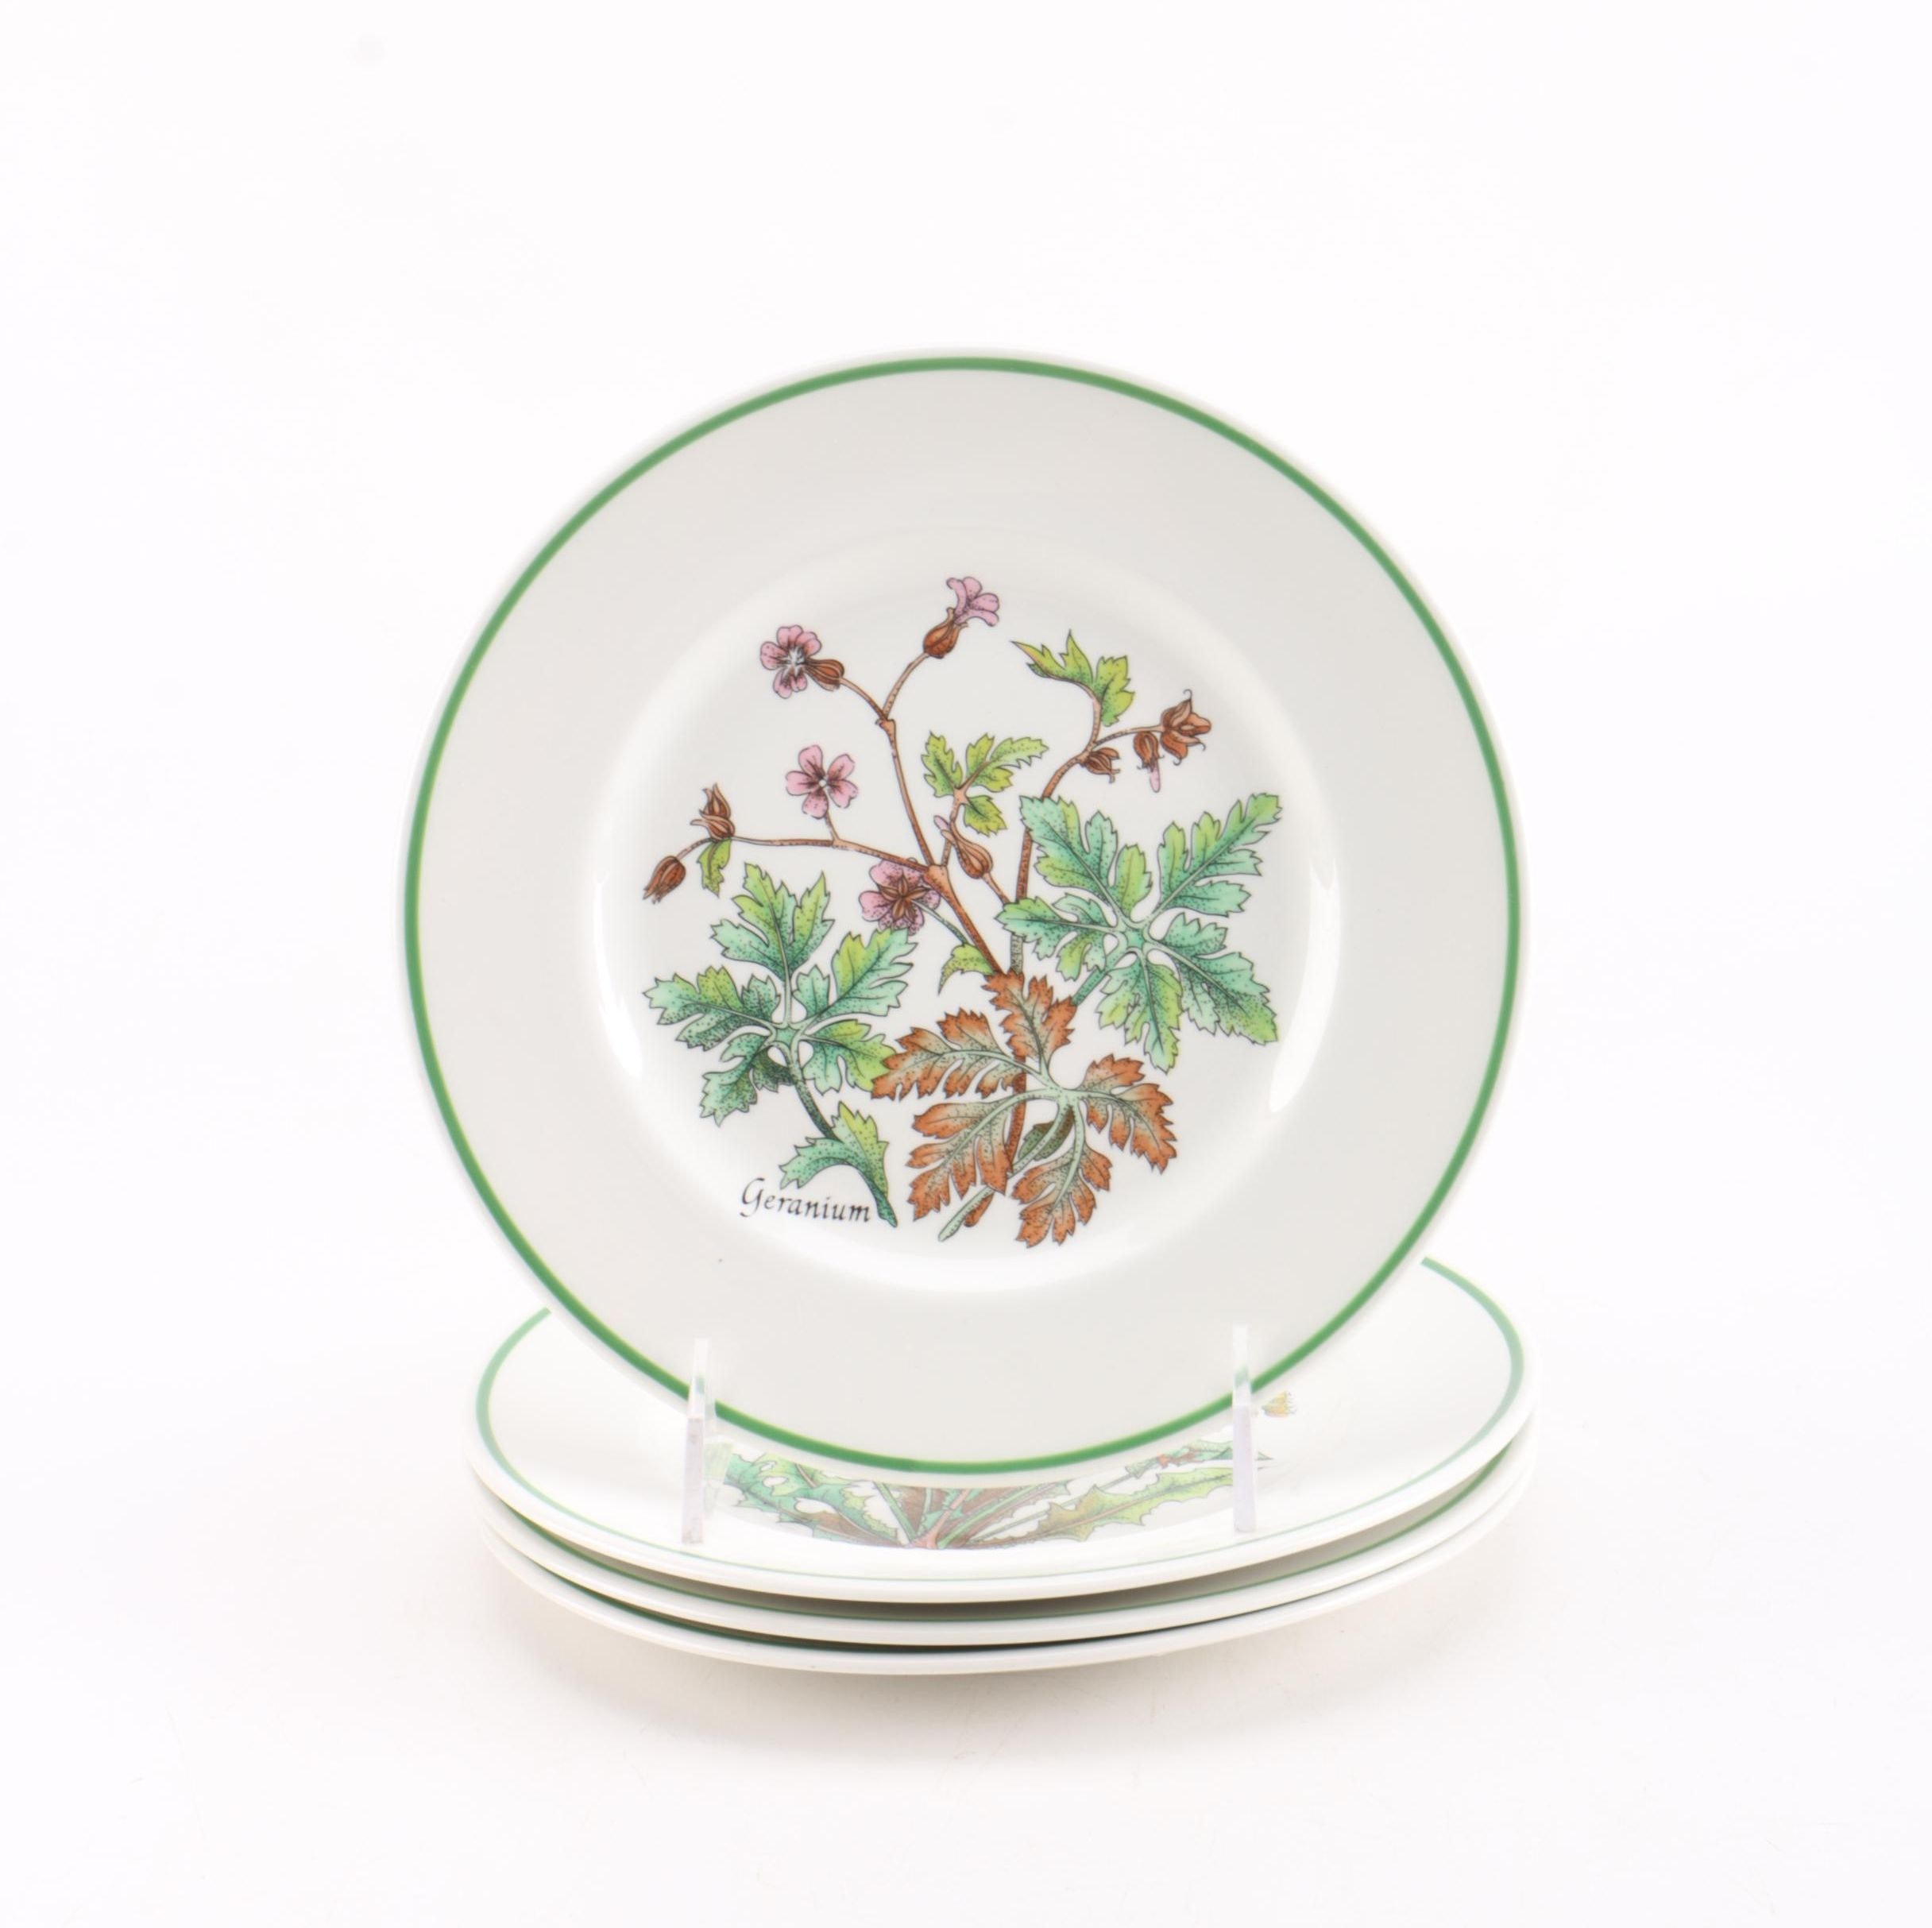 Set of Tiffany & Co. Wild Flowers Plates